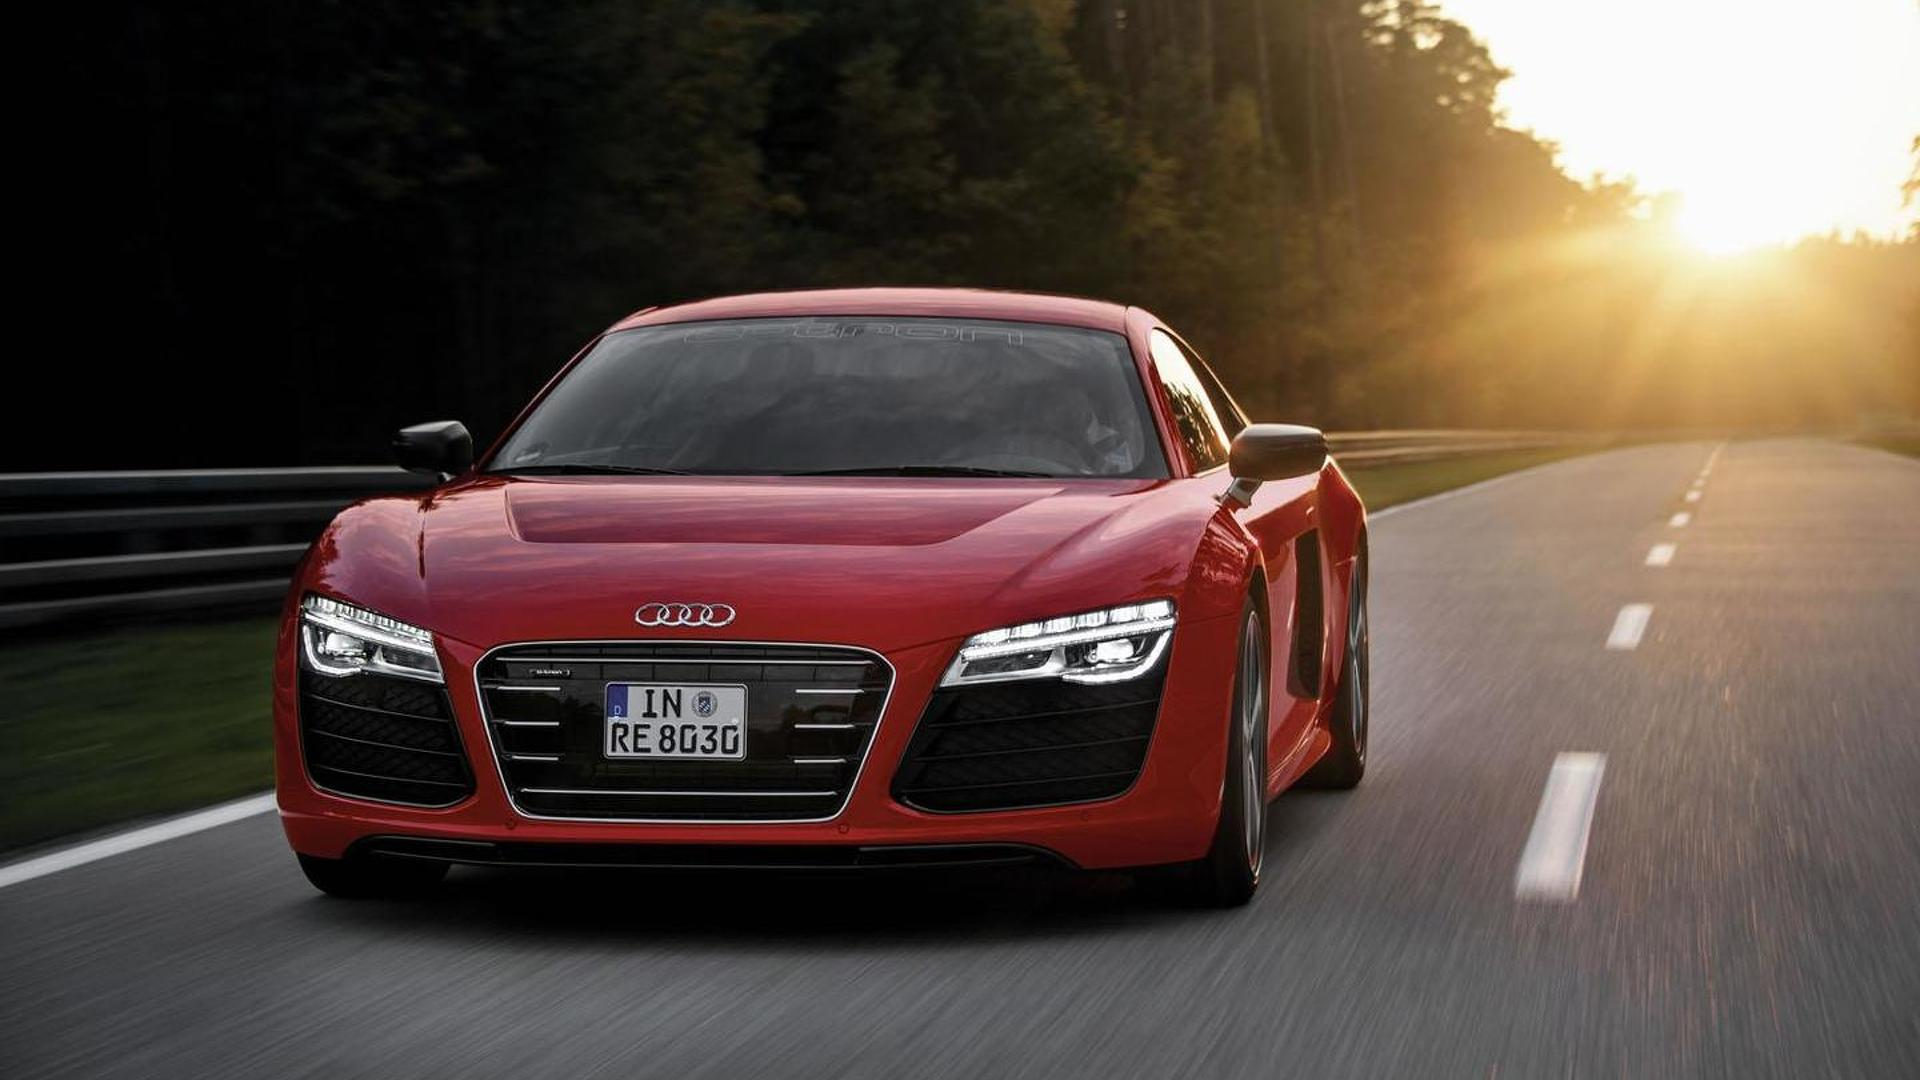 Audi R8 e-tron back on track, could be launched next year - report